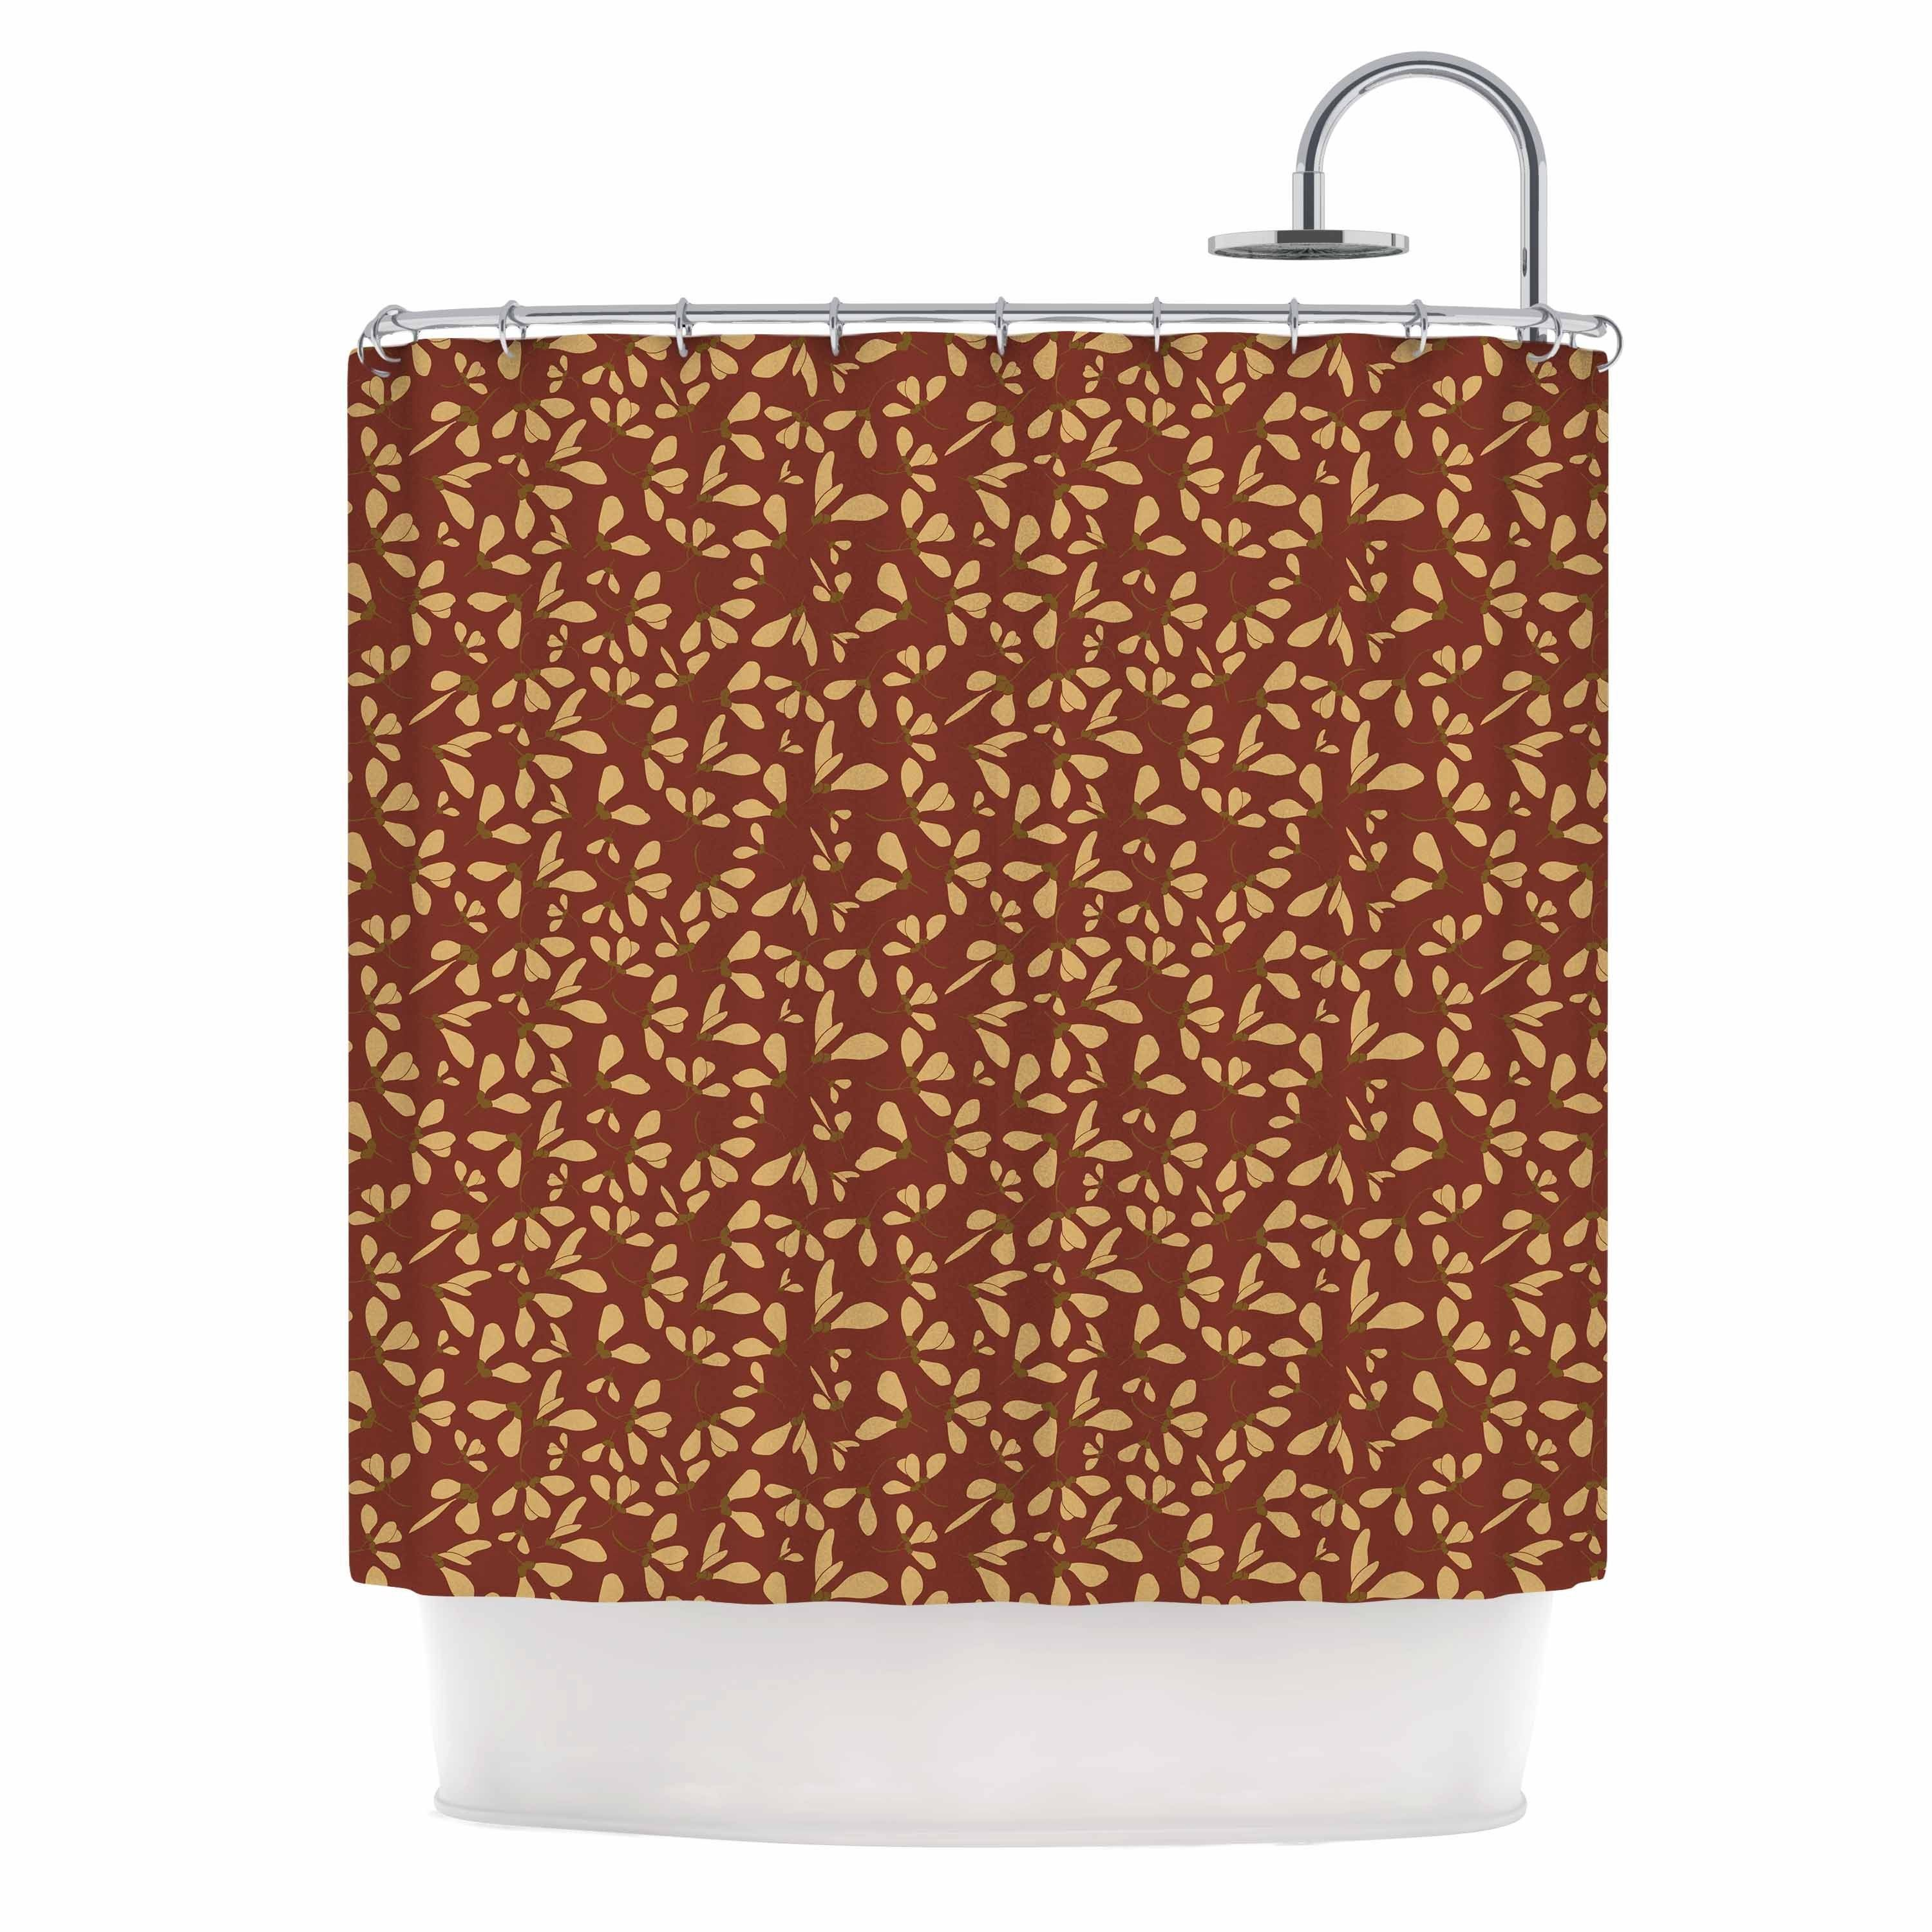 Kess InHouse Mayacoa Studio 'Under The Golden Hour' Shower Curtain